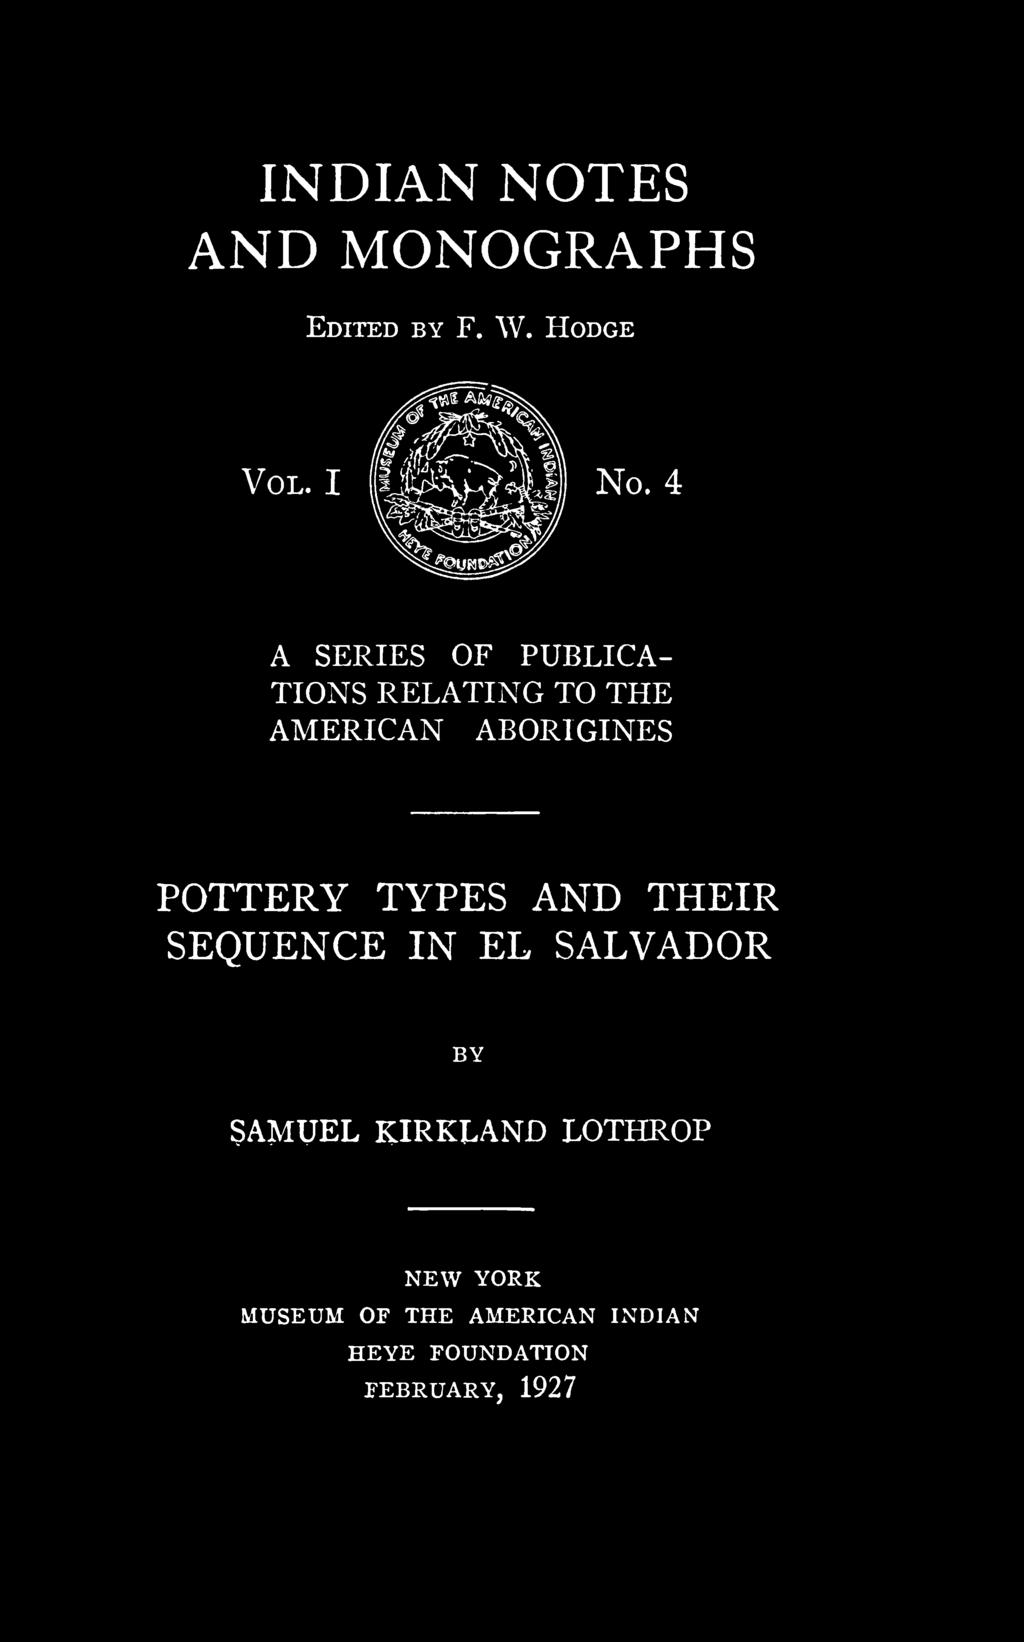 POTTERY TYPES AND THEIR SEQUENCE IN EL SALVADOR SAMUEL KIRKLAND